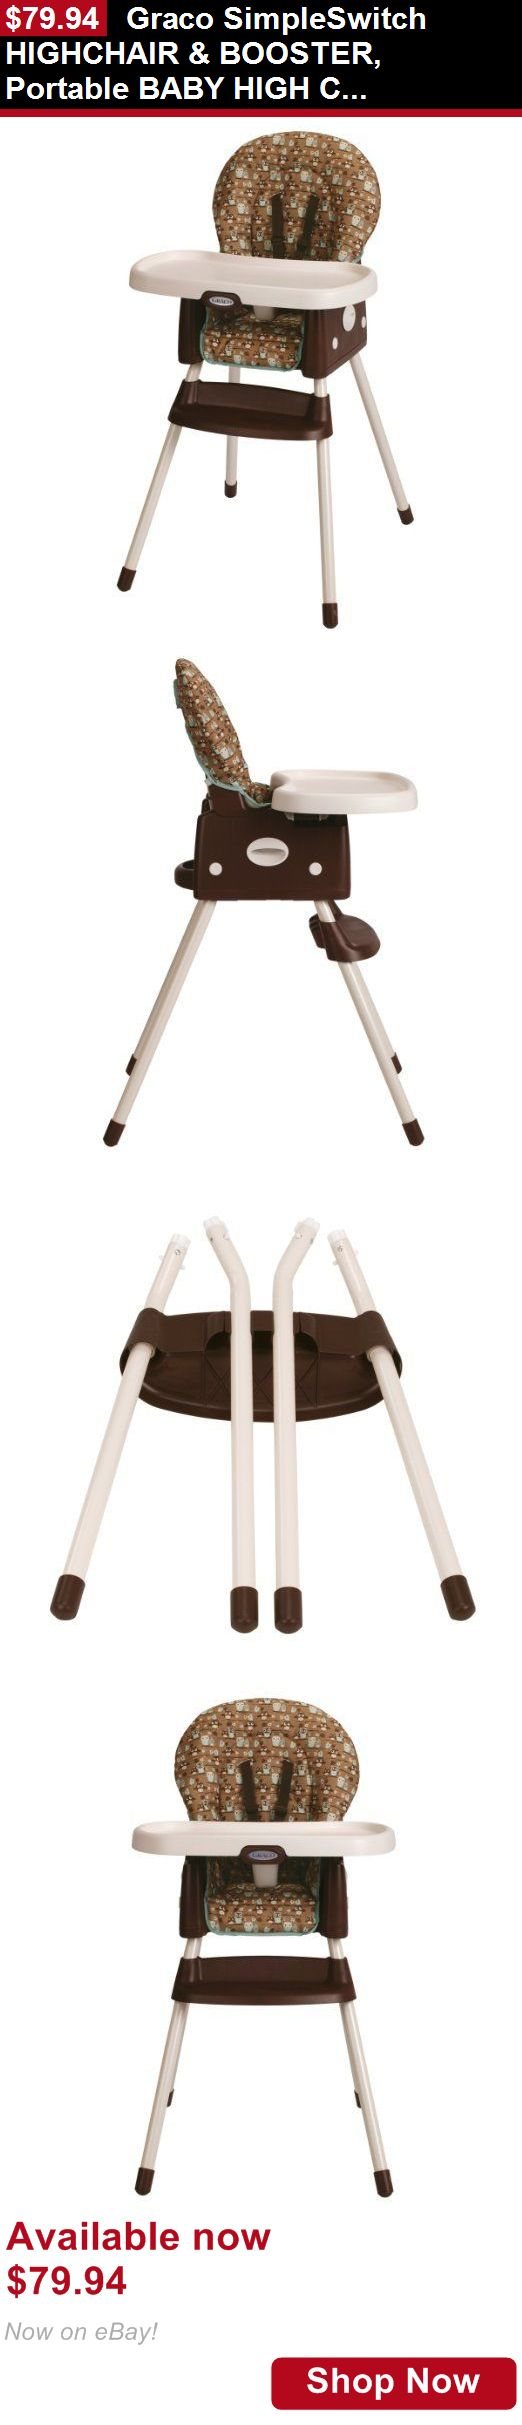 Baby High Chairs: Graco Simpleswitch Highchair And Booster, Portable Baby High Chair, Little Hoot BUY IT NOW ONLY: $79.94